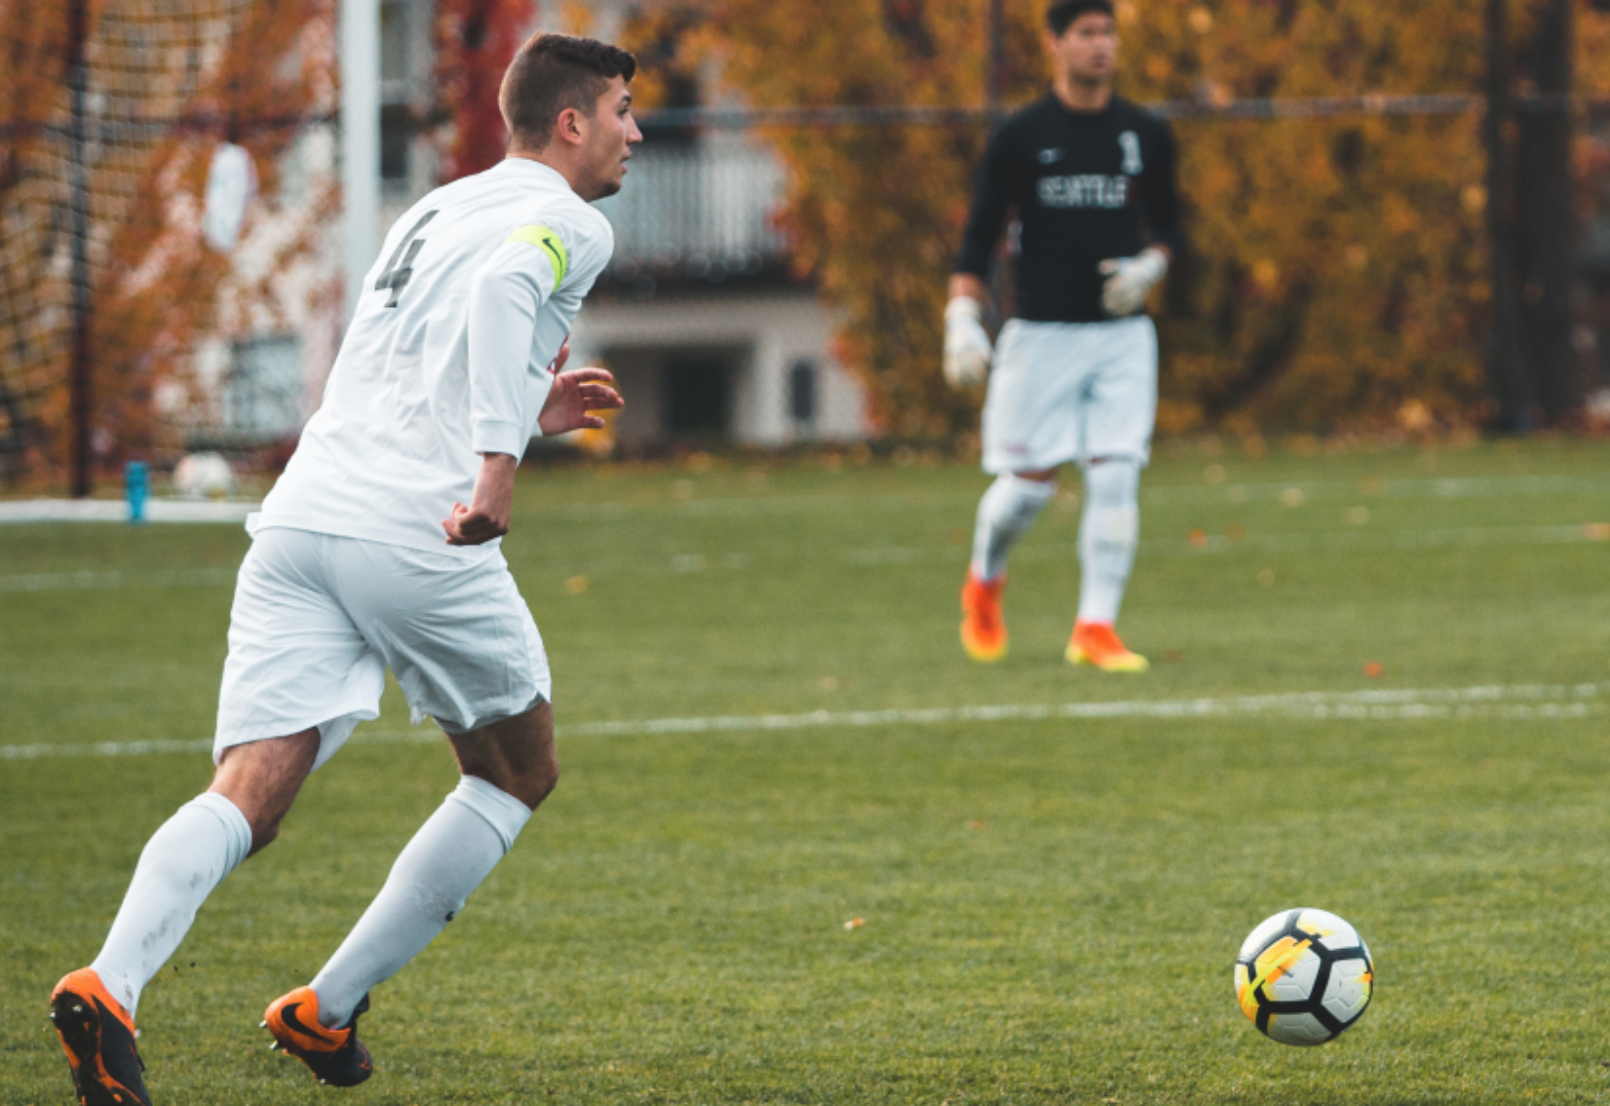 Nathan Aune was the 50th choice in the MLS draft.